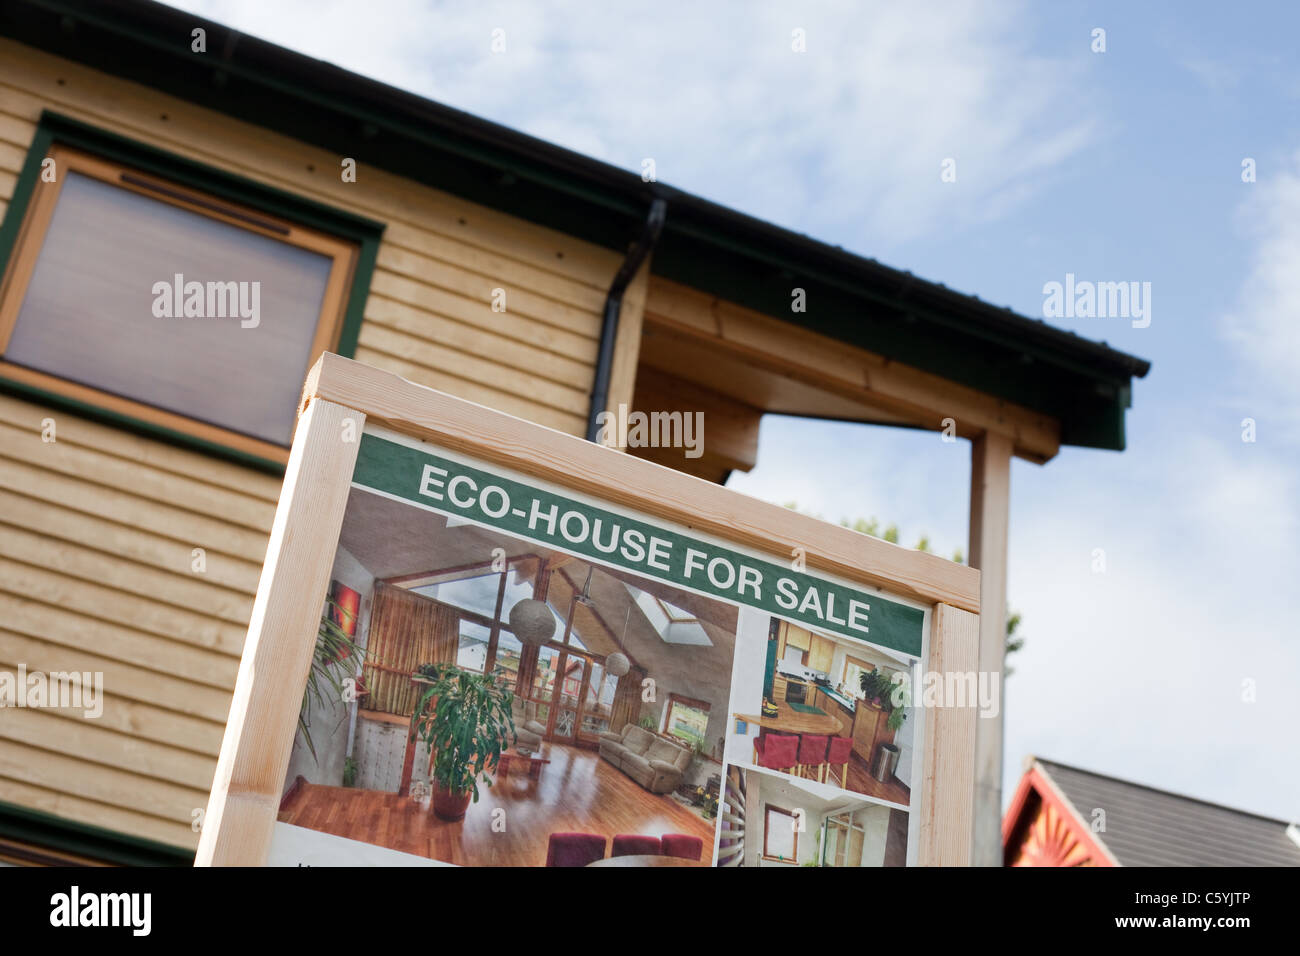 Eco house for sale in Findhorn Foundation Community, Scotland - Stock Image